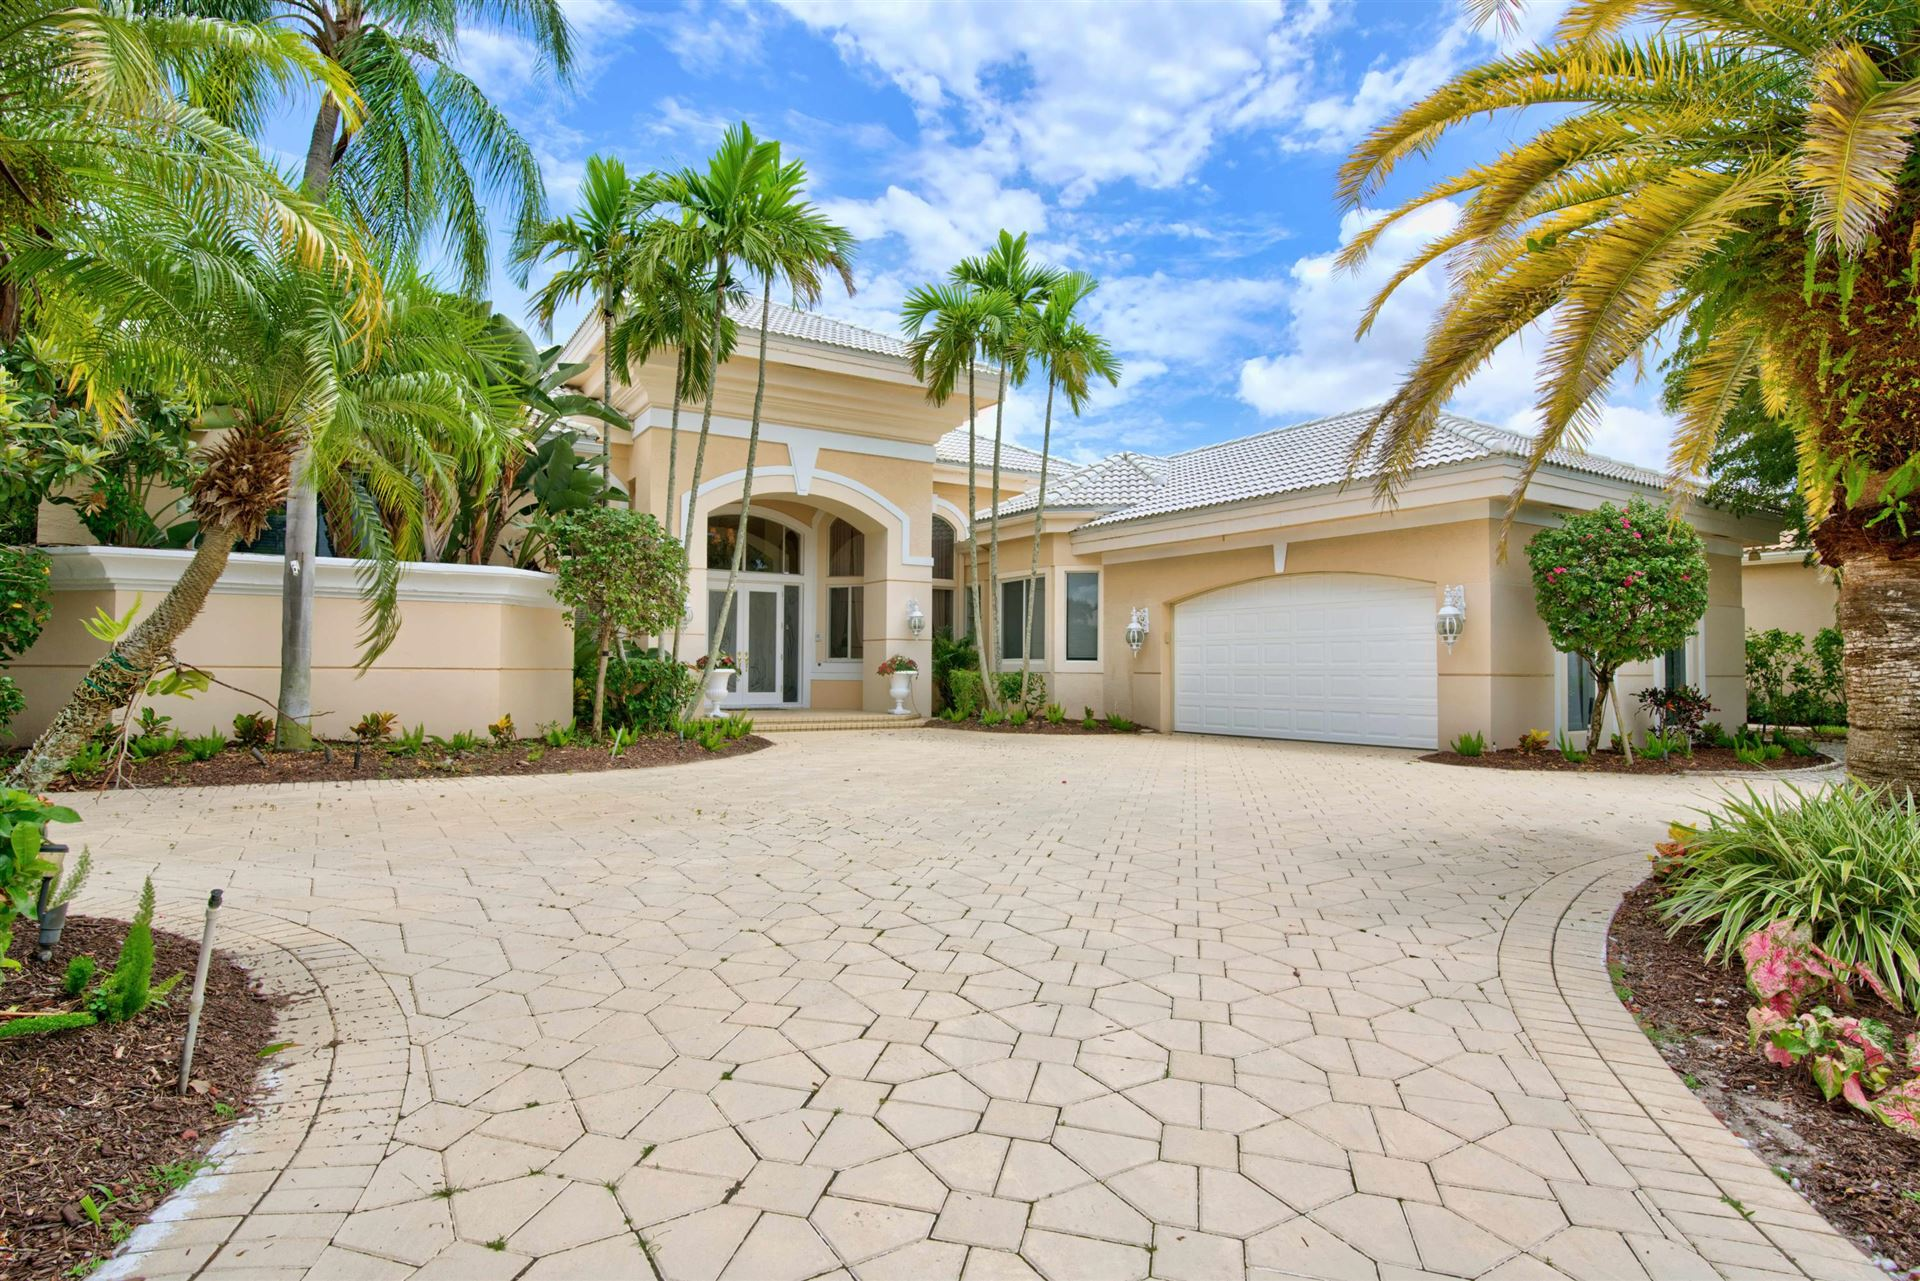 Photo of 52 Saint James Drive, Palm Beach Gardens, FL 33418 (MLS # RX-10644553)